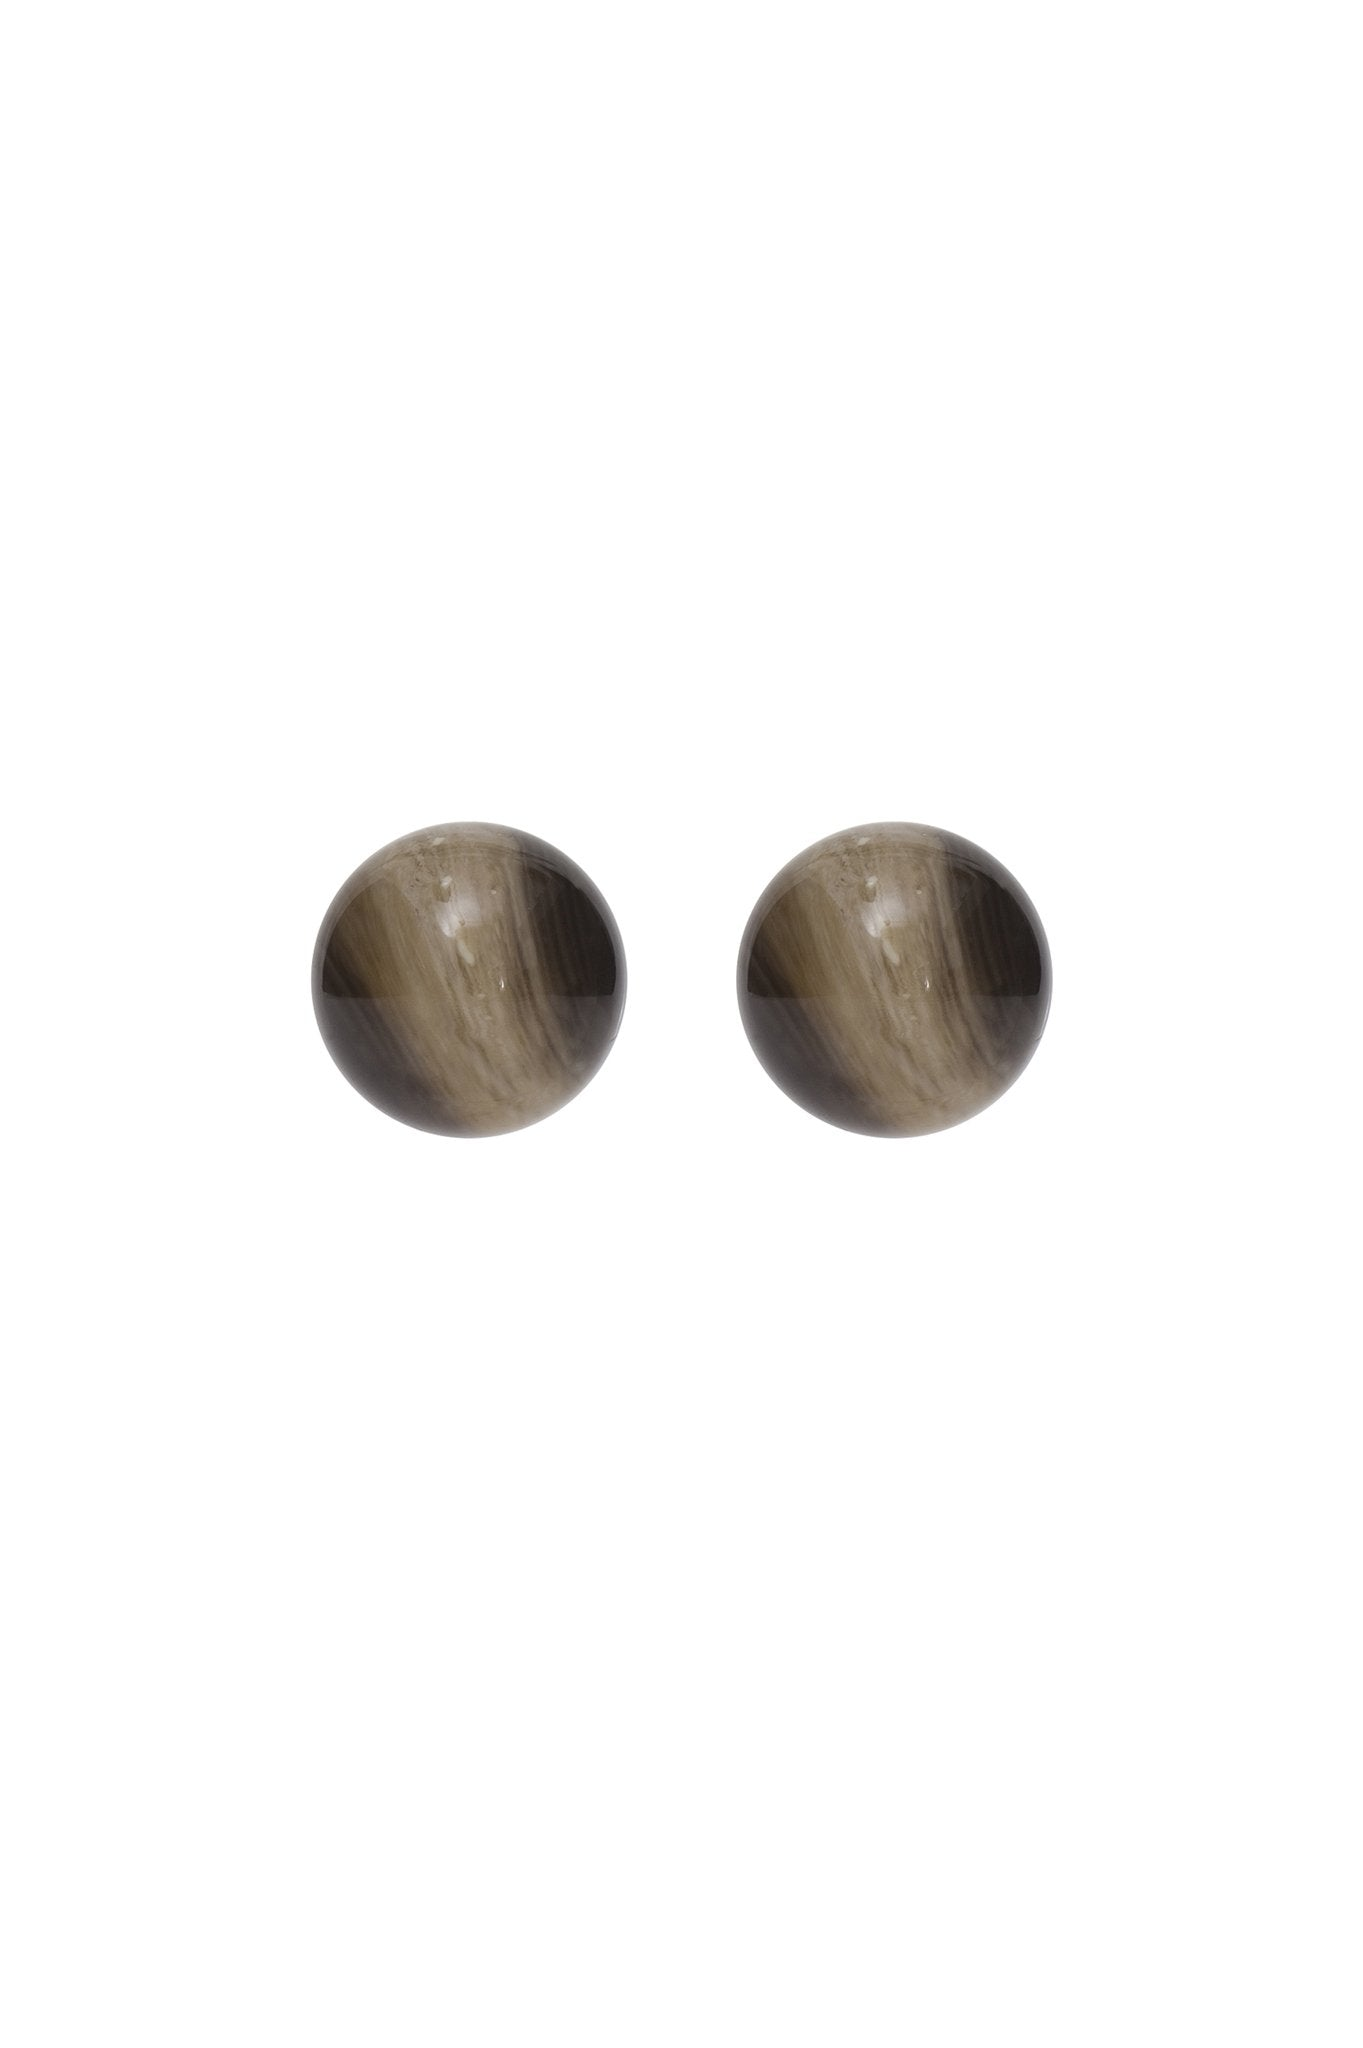 BALL BONE EARRINGS